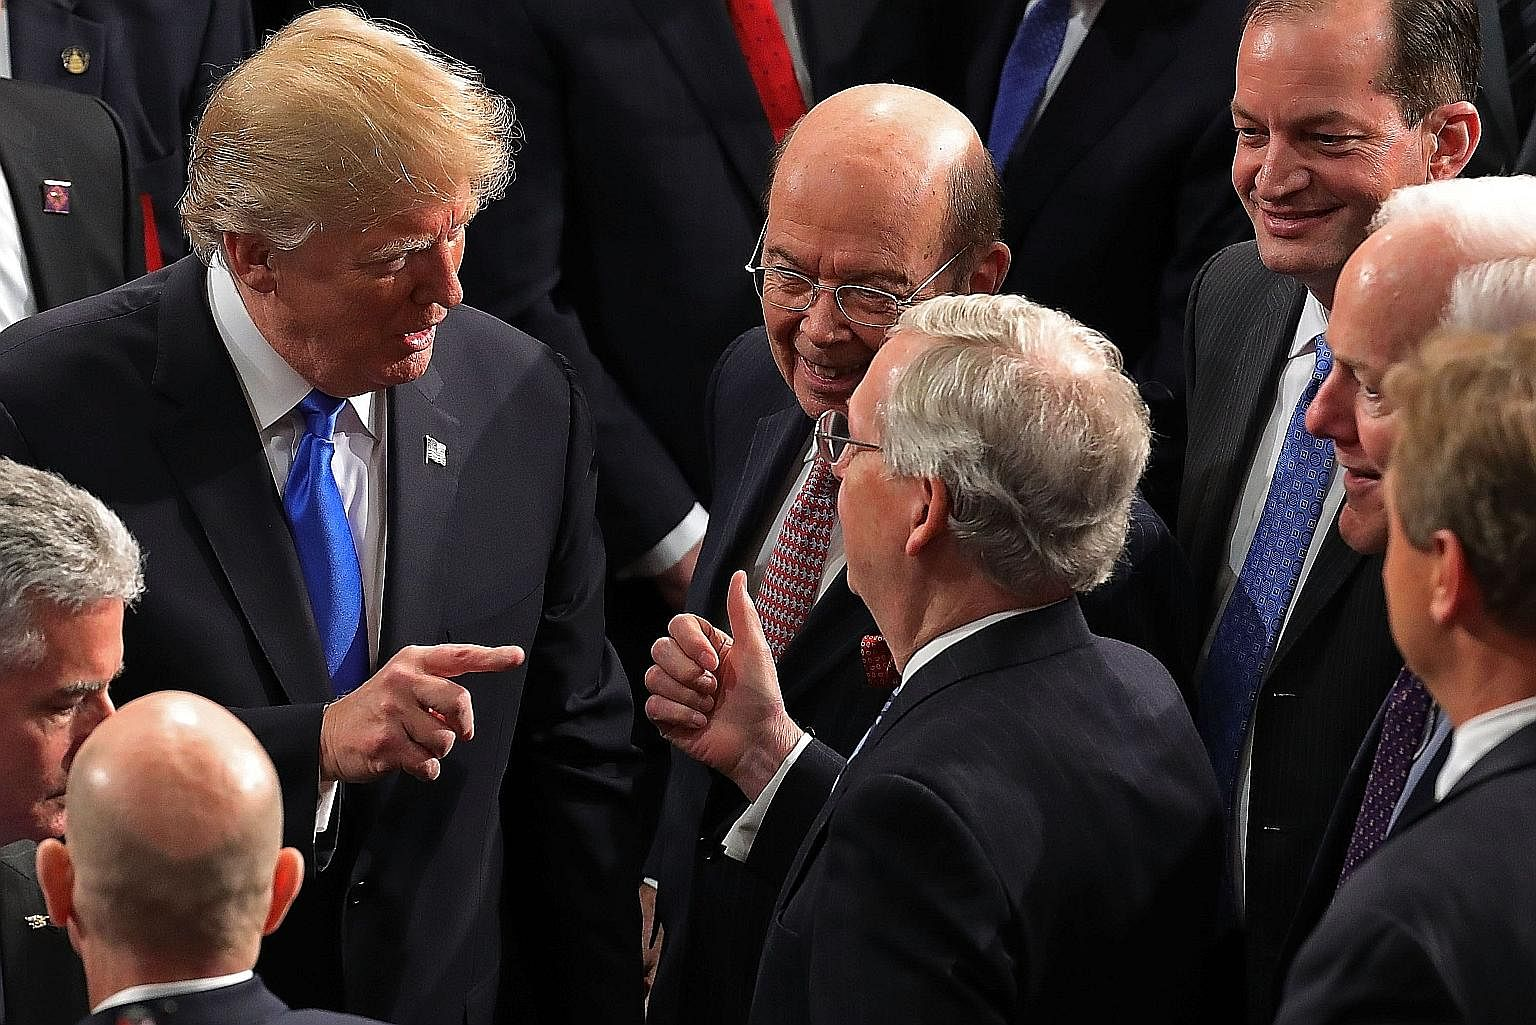 US President Donald Trump with top Republicans following his State of the Union address last month. Voices from within the party have been warning him against following through on his tough talk on trade with China.